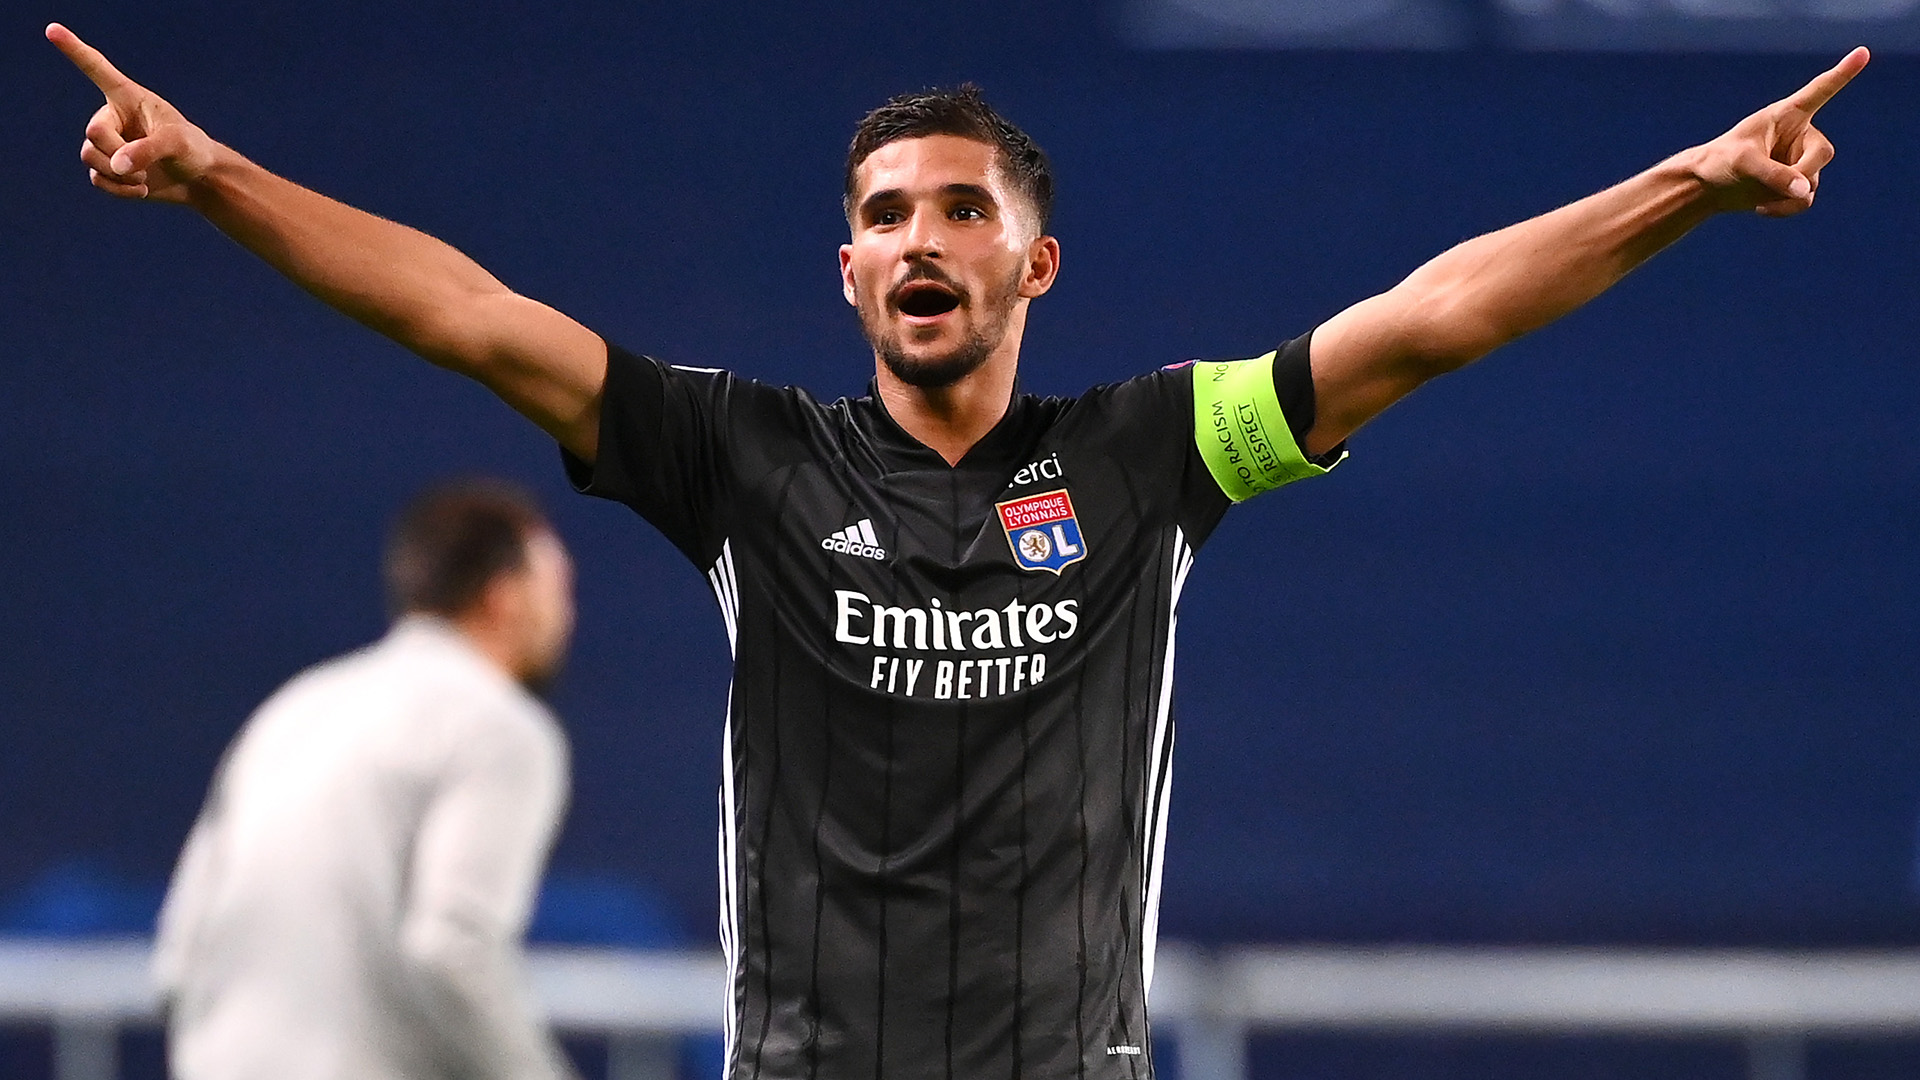 'I'm happy to stay at Lyon' - Aouar positive following failed Arsenal deal